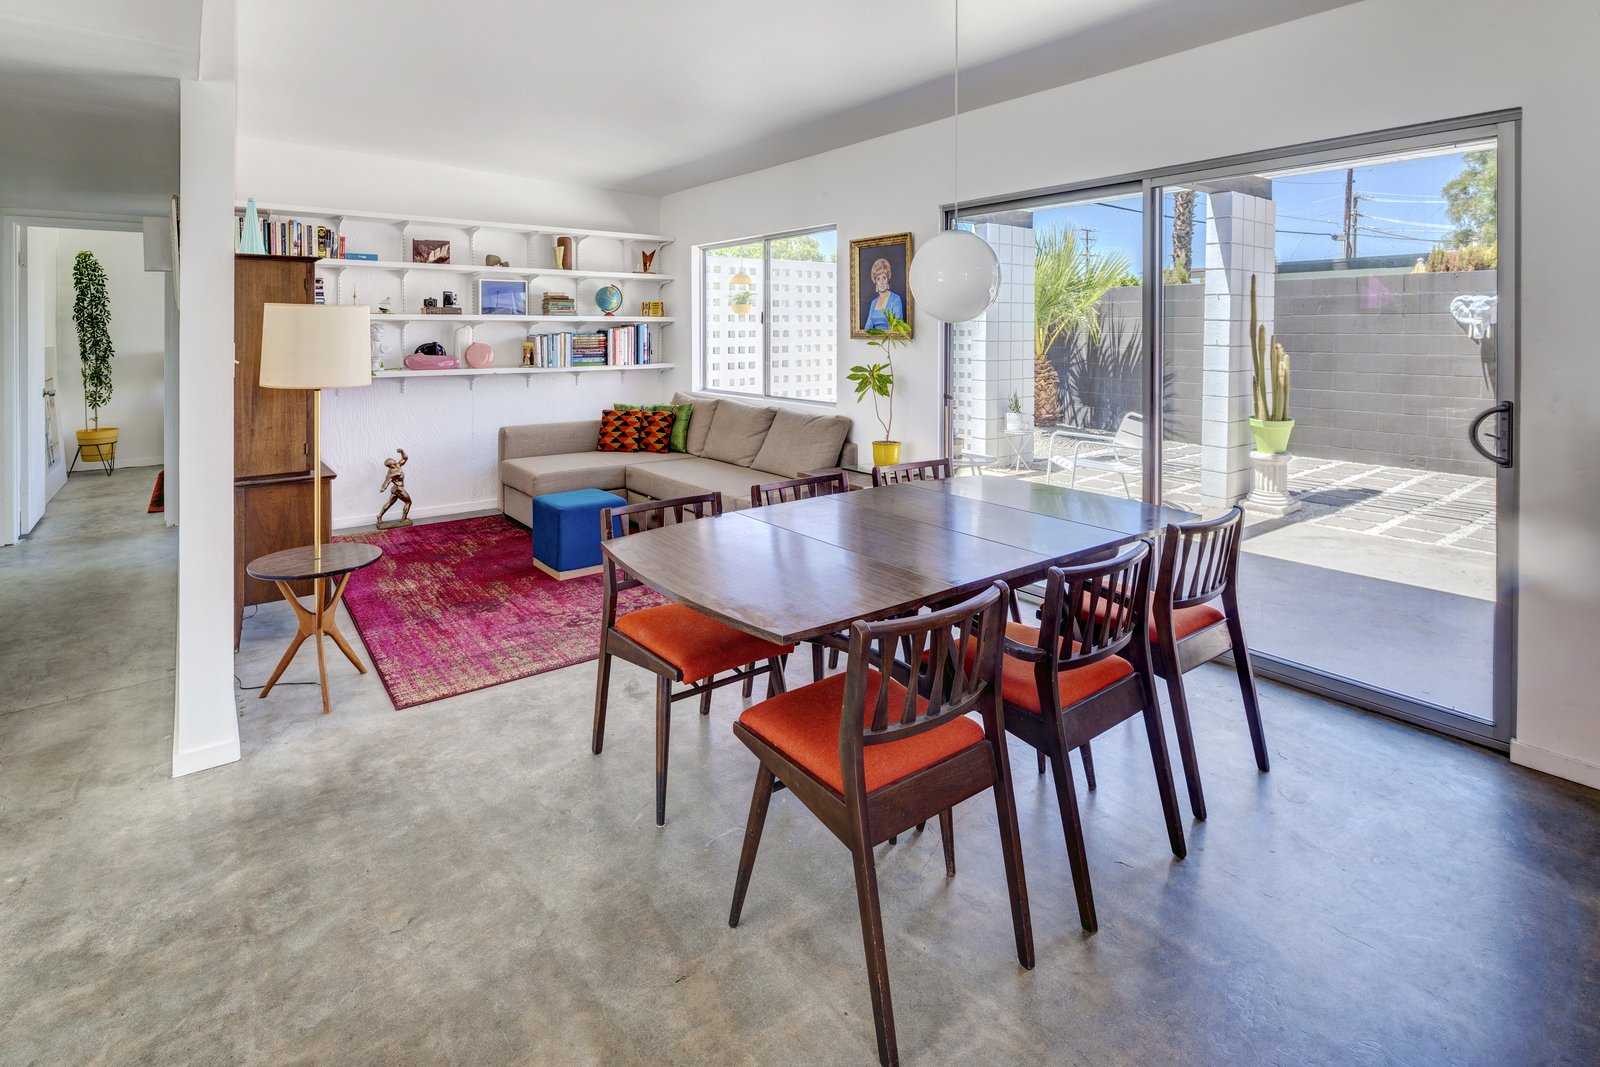 Dining, Concrete, Pendant, Chair, Table, Shelves, and Lamps  Dining Concrete Table Shelves Lamps Chair Photos from A Donald Wexler-Designed Midcentury Home in Palm Springs Asks $599K